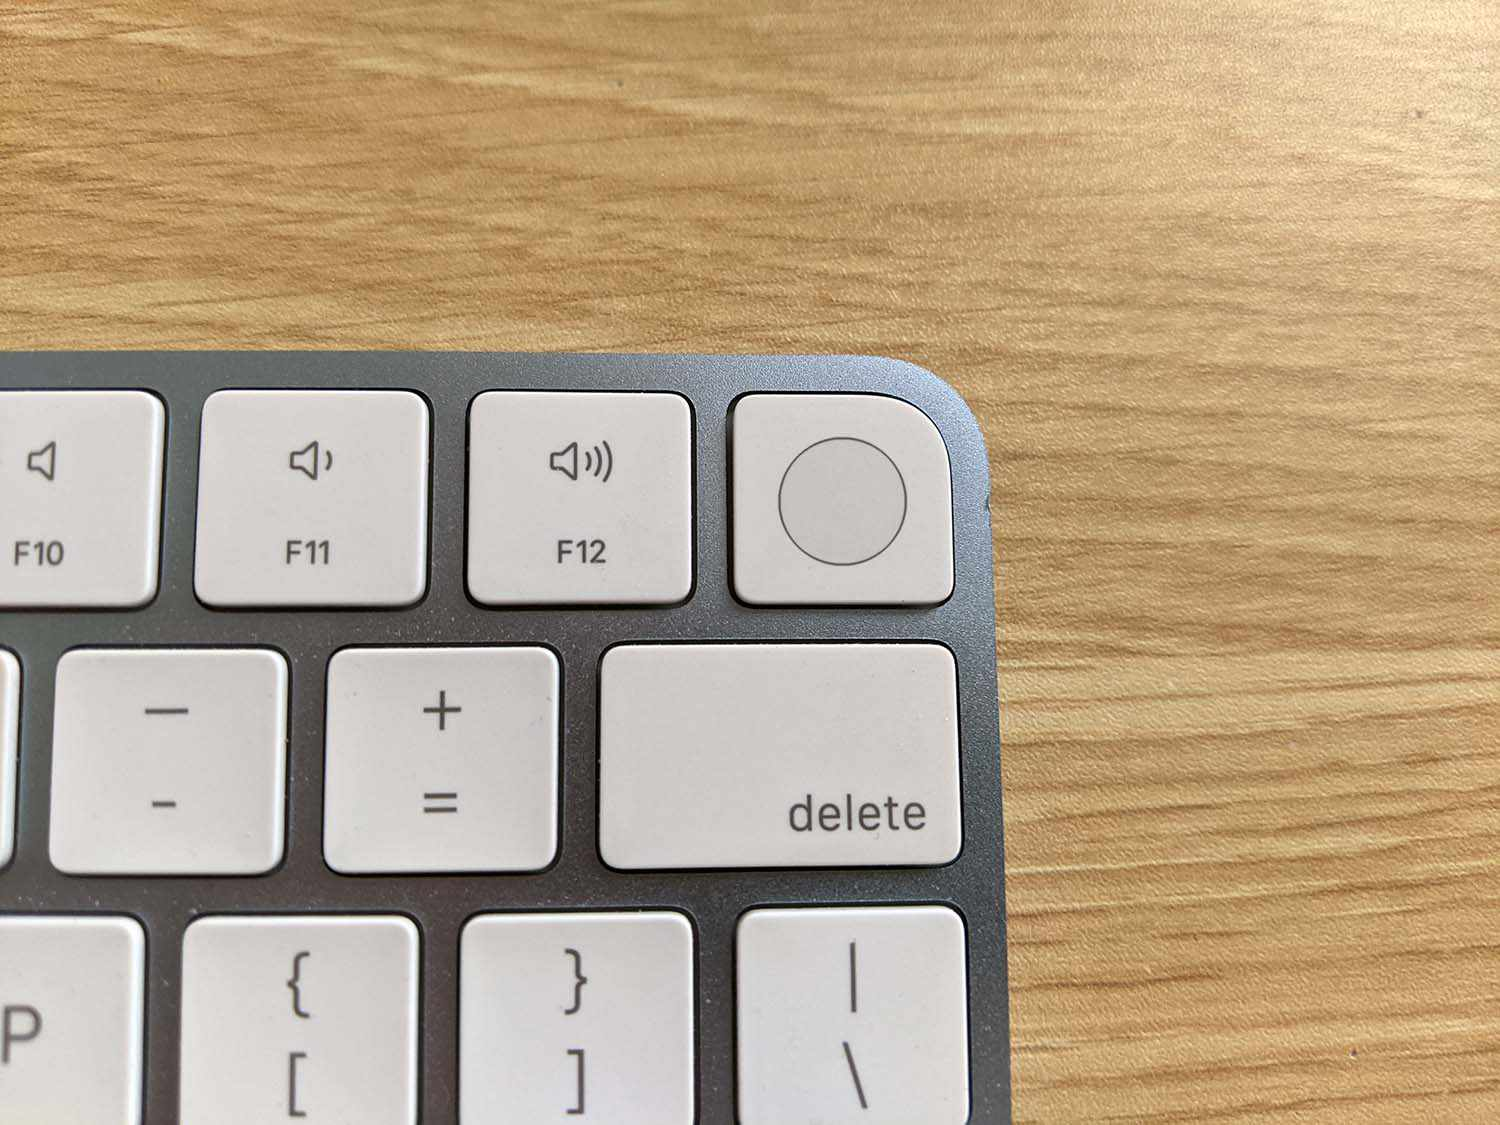 The Touch ID button on an Apple Magic Keyboard.